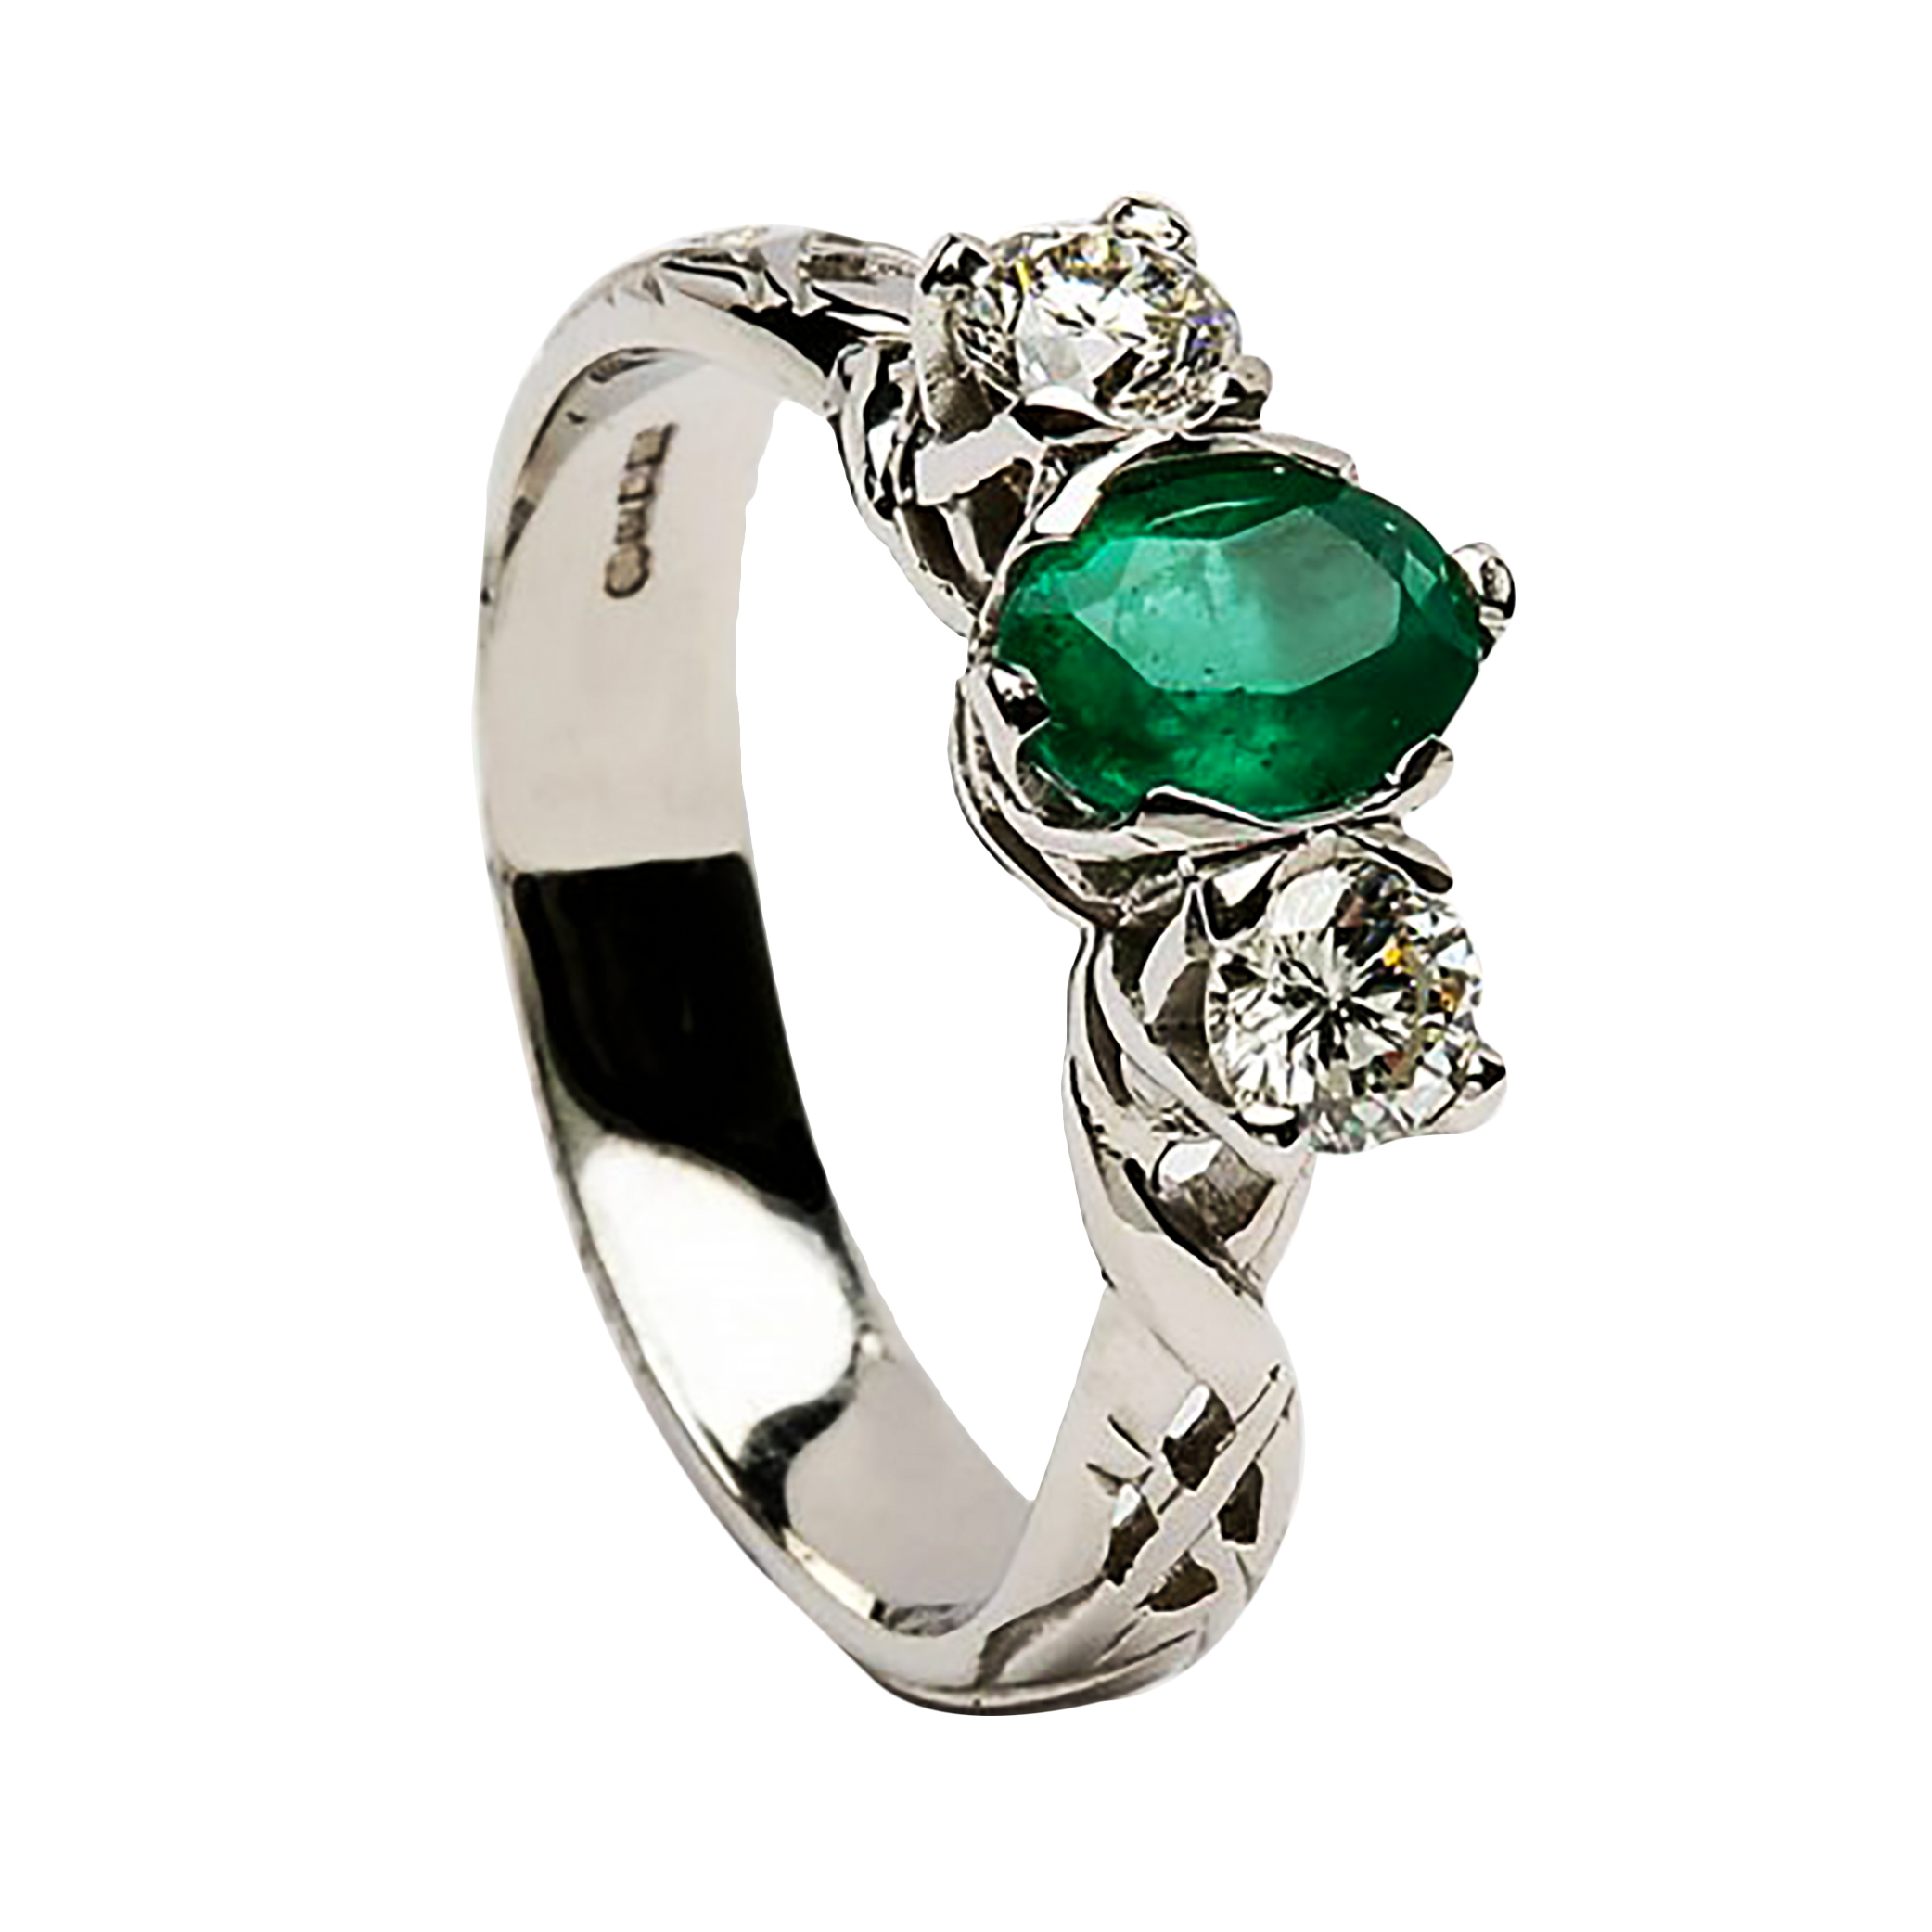 mn colombian cluster colombia diamond emerald product ring dress classic jewellery